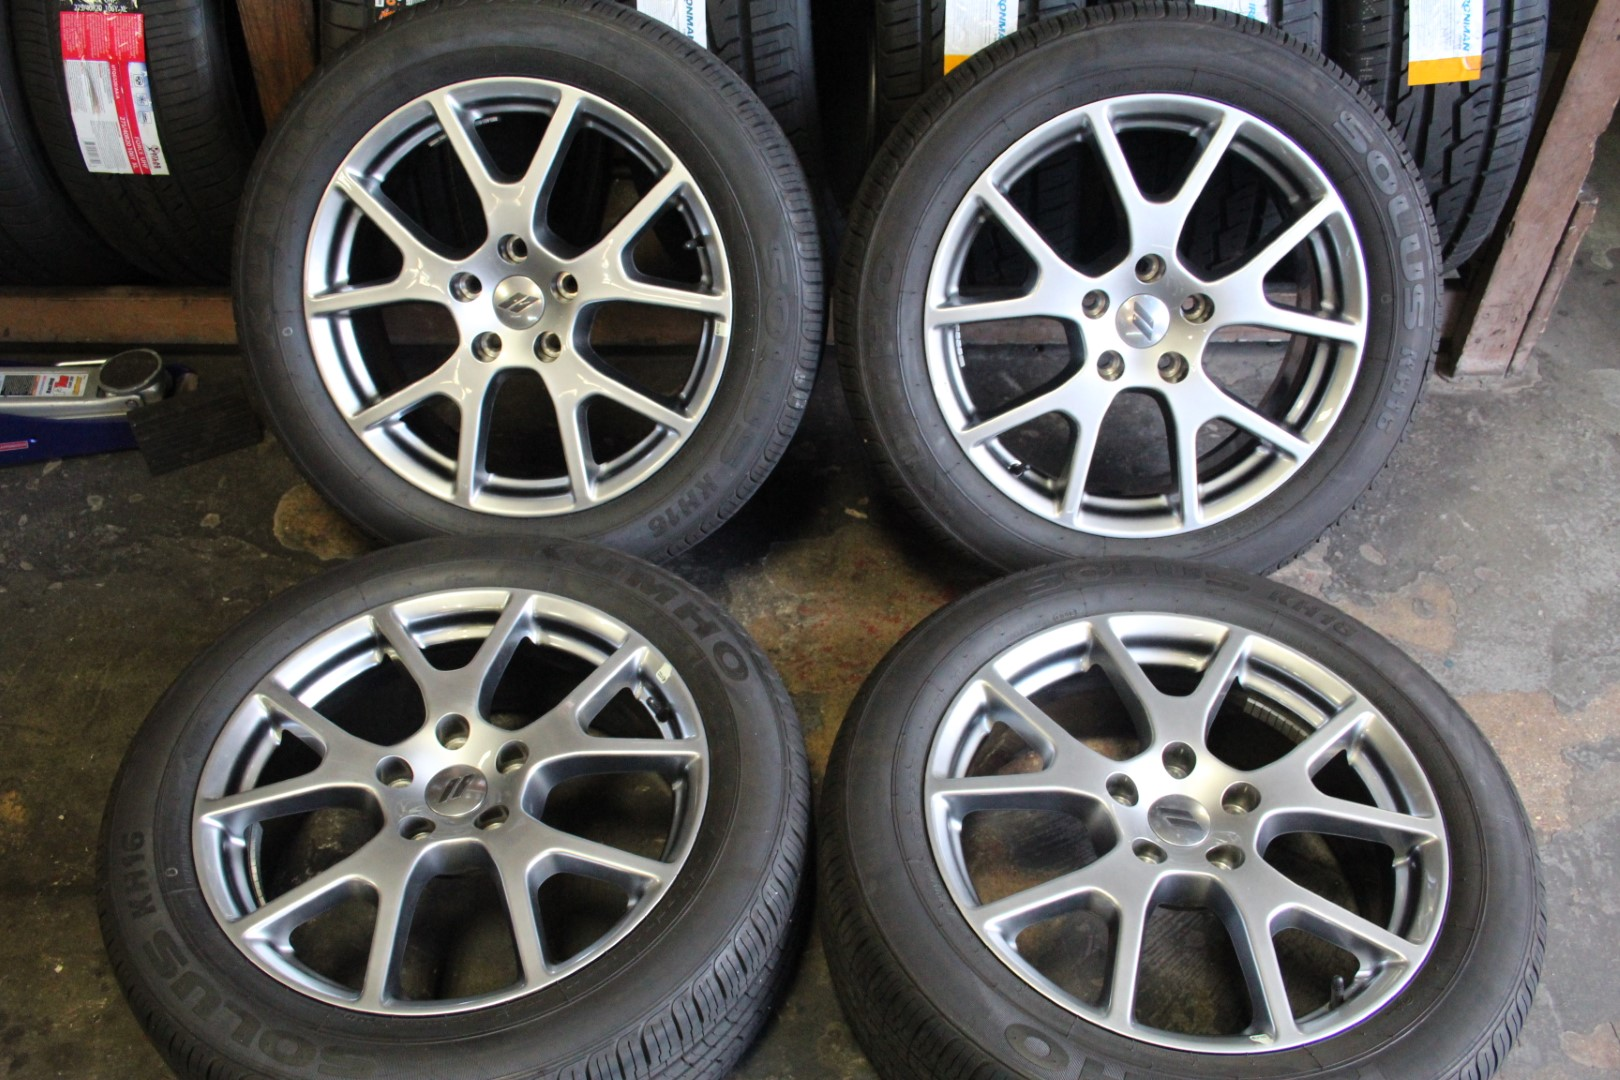 2012 Dodge Journey Tire Size >> Set Of 4 Dodge Journey 2011 2012 2013 2014 2015 2016 19 Oem Rims